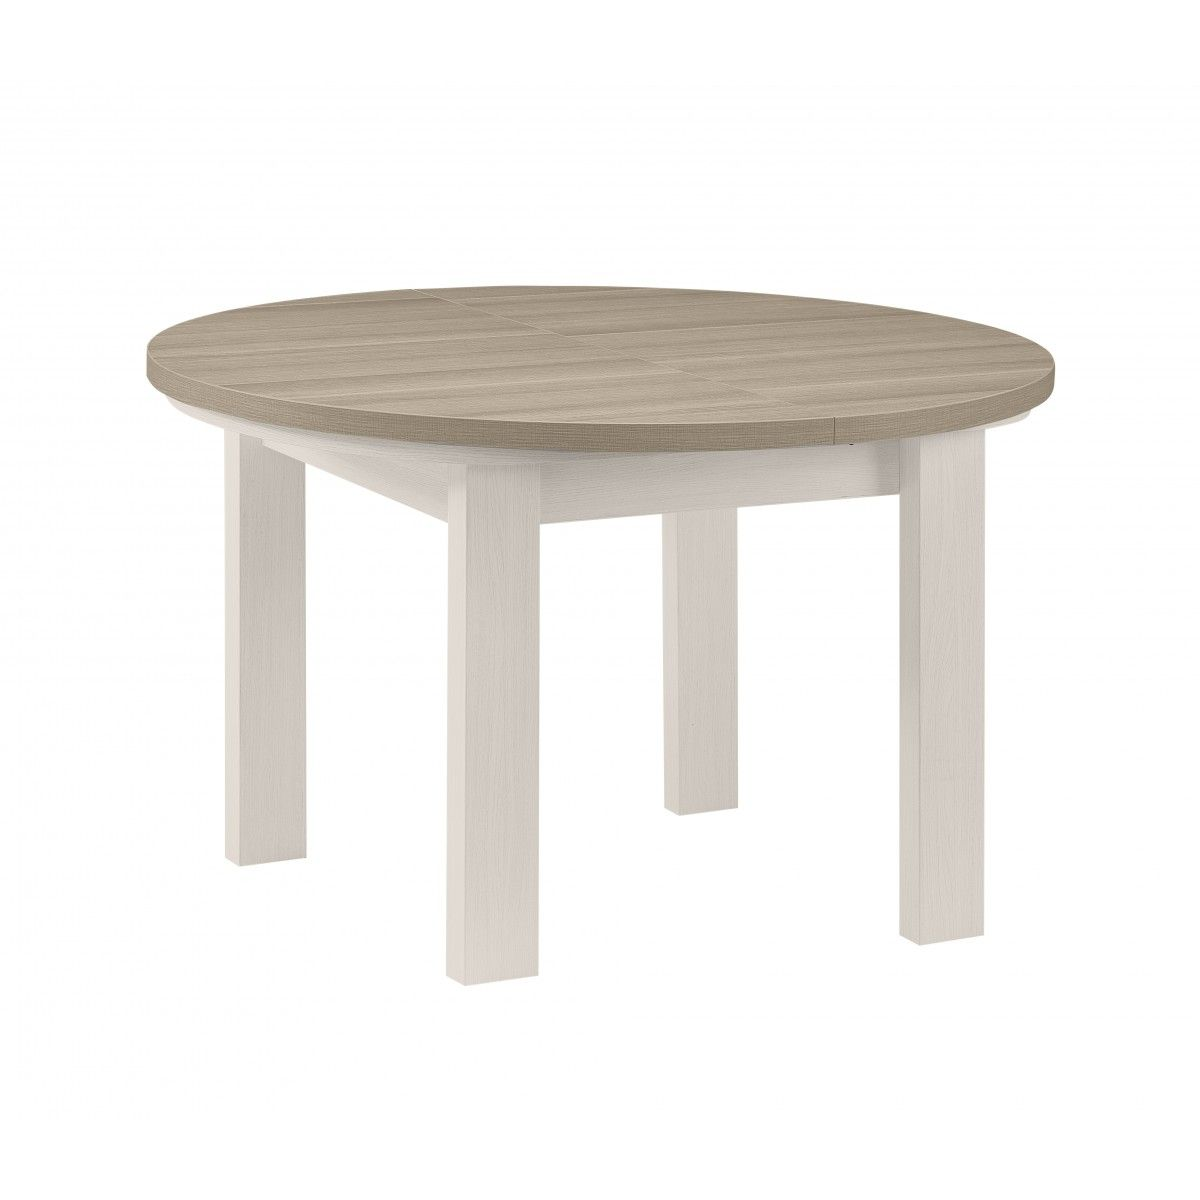 Mesa redonda extensible toscana home decoration for Mesa redonda extensible